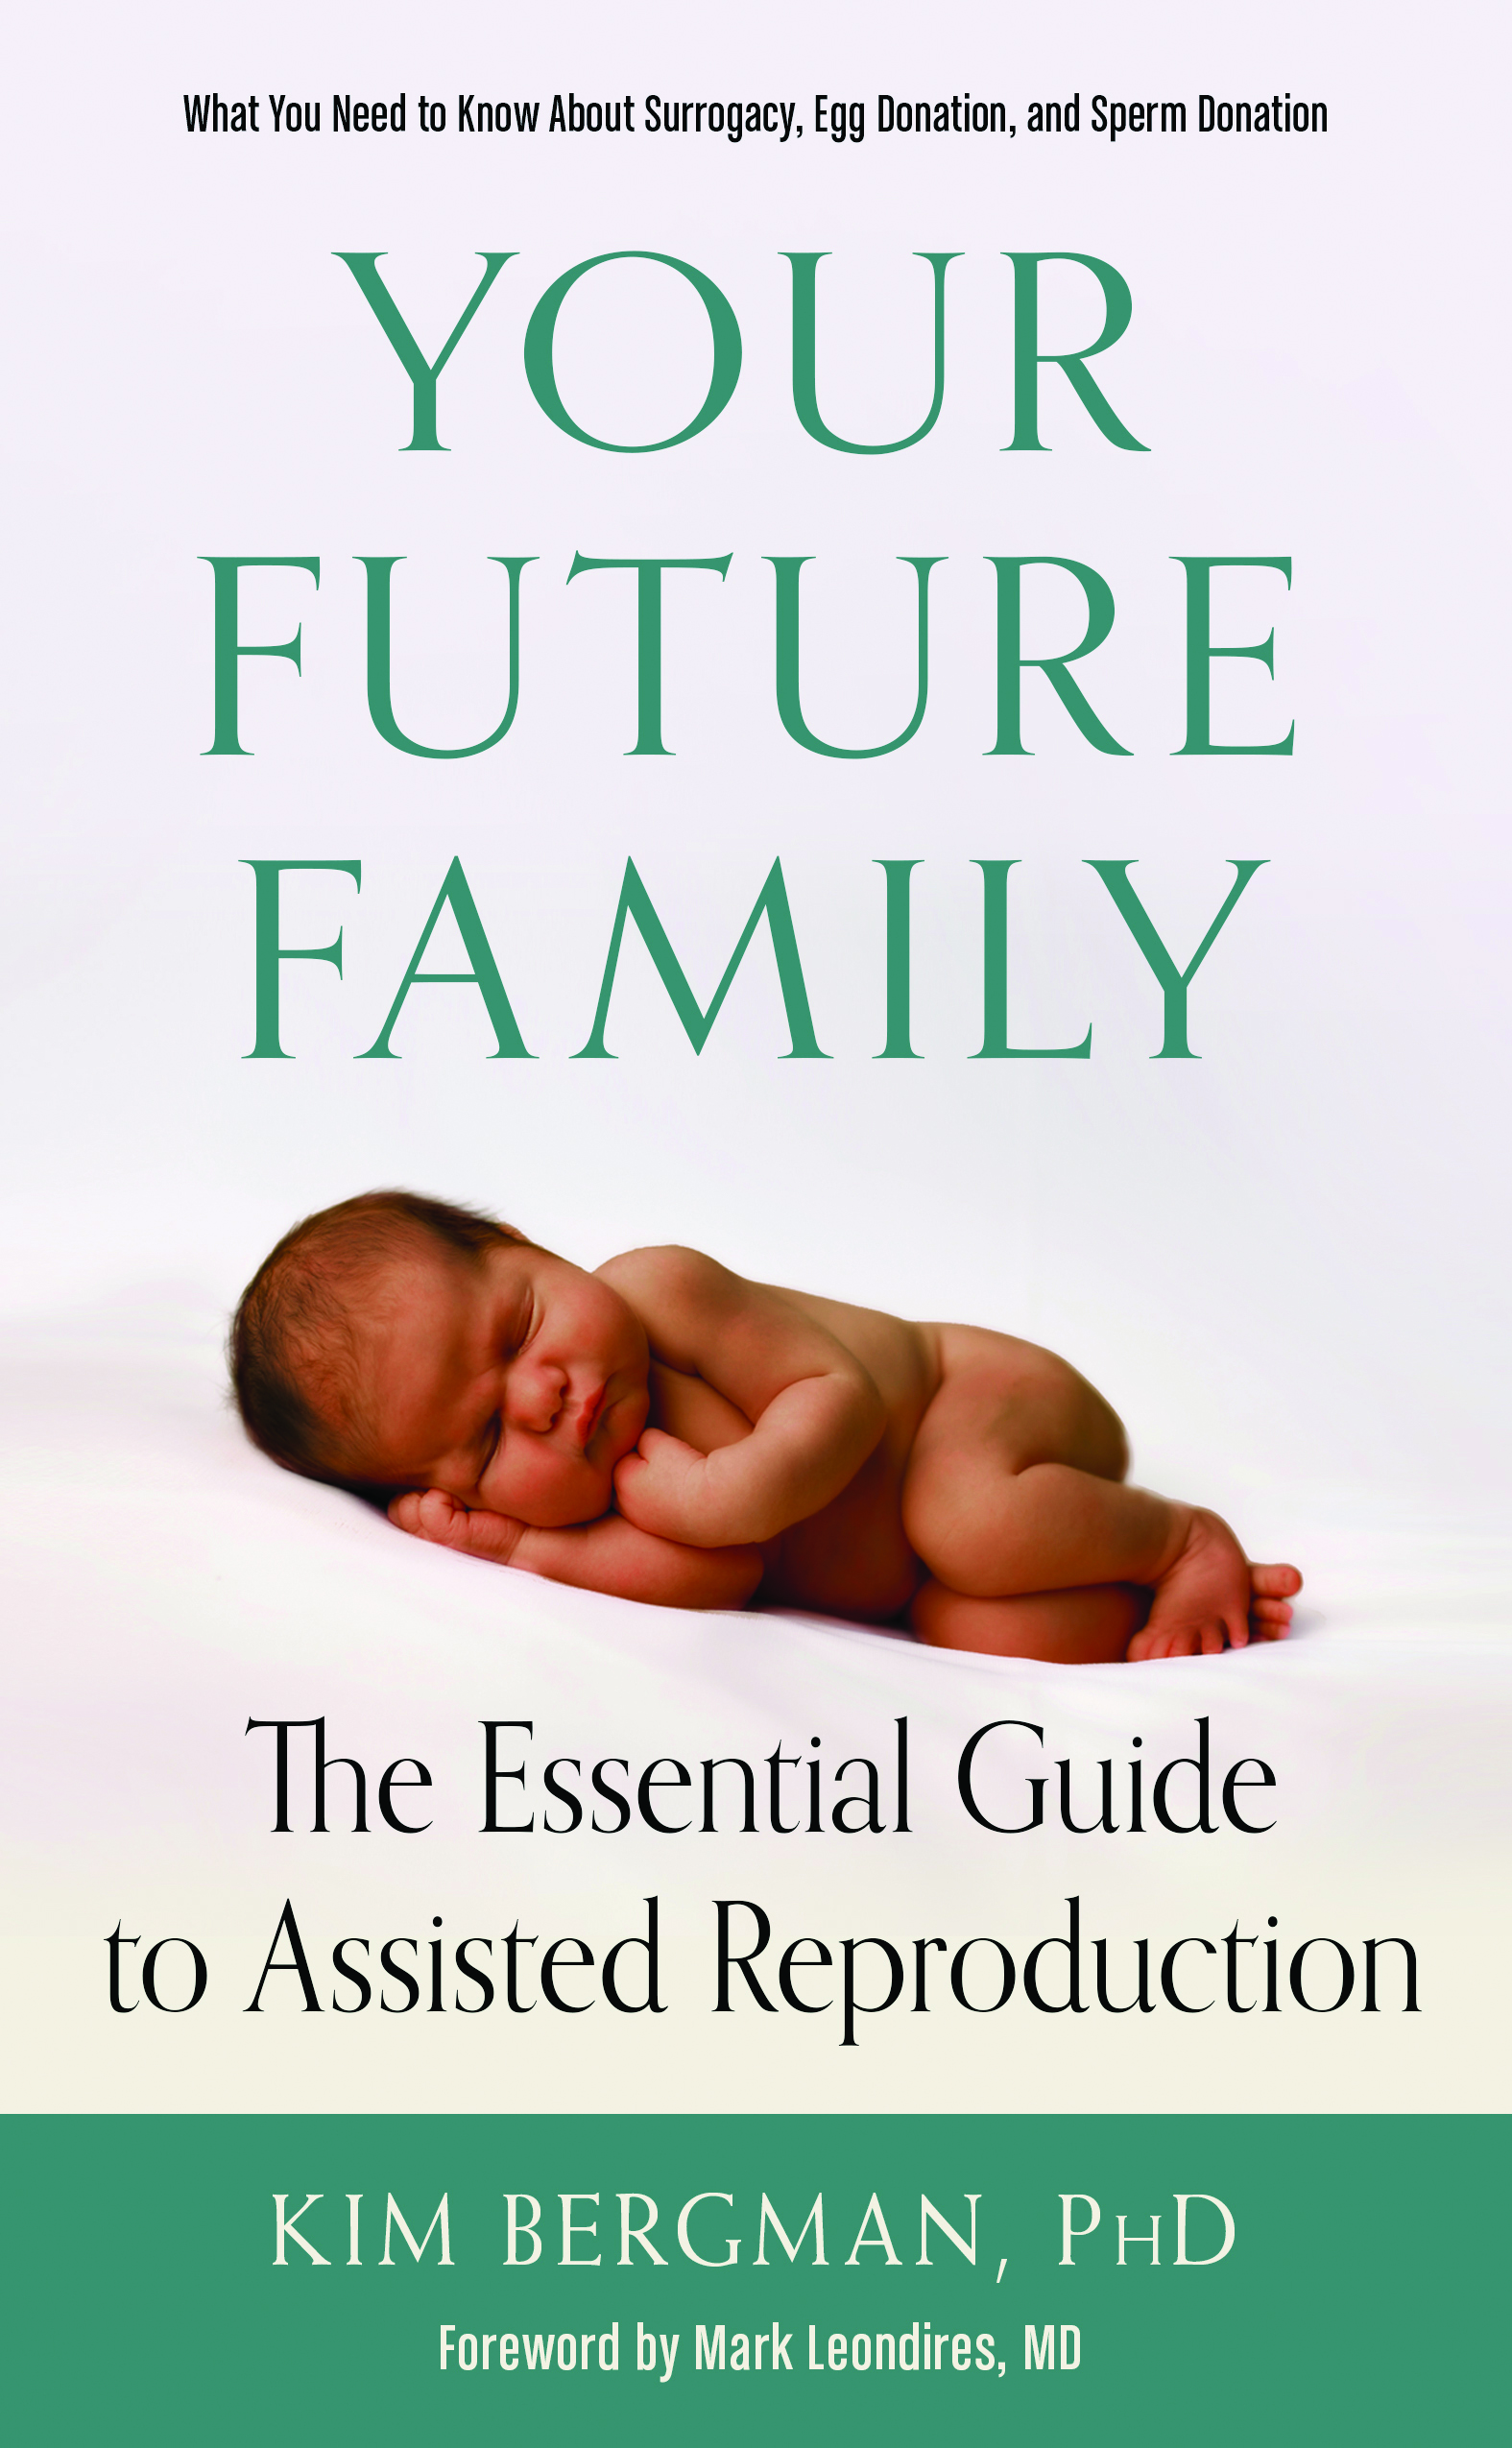 Your Future Family book jacket_Kim Bergman_Conari Press - Ann Kaiser.jpg